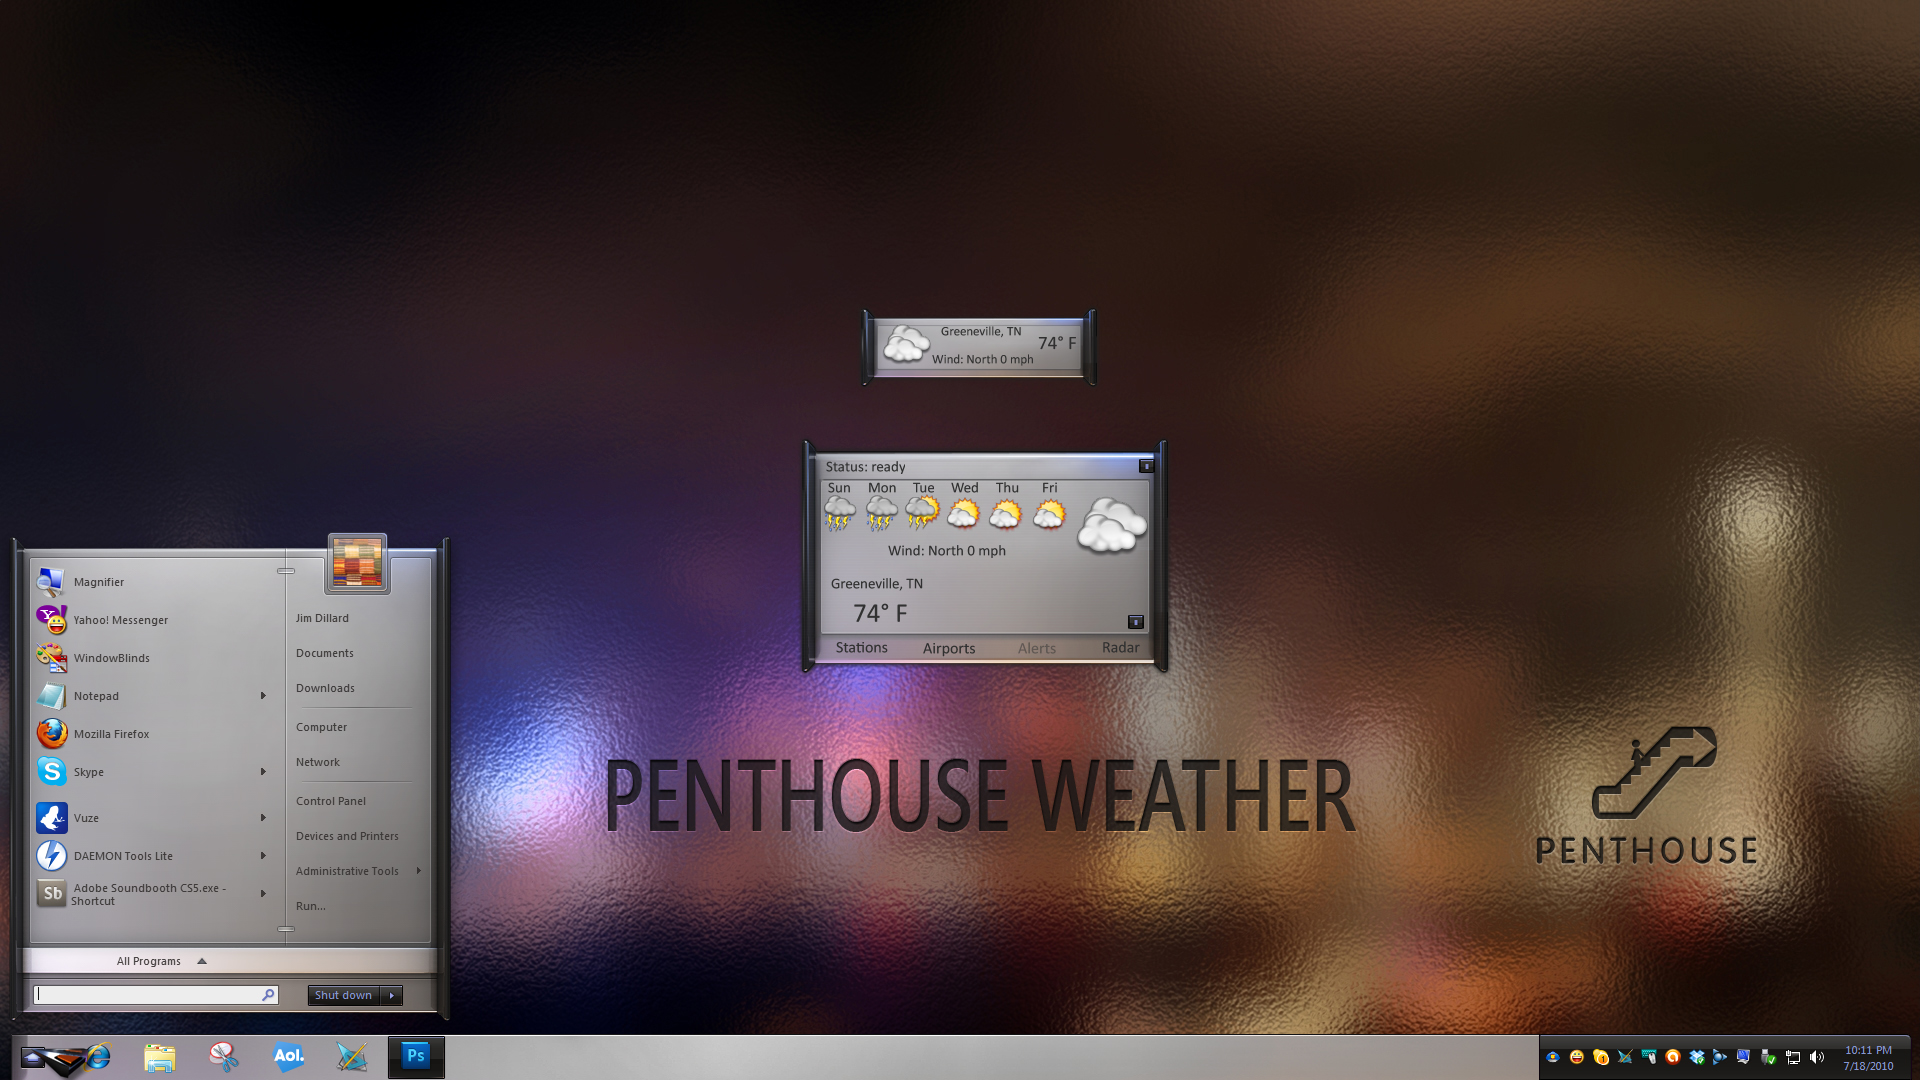 Penthouse Weather